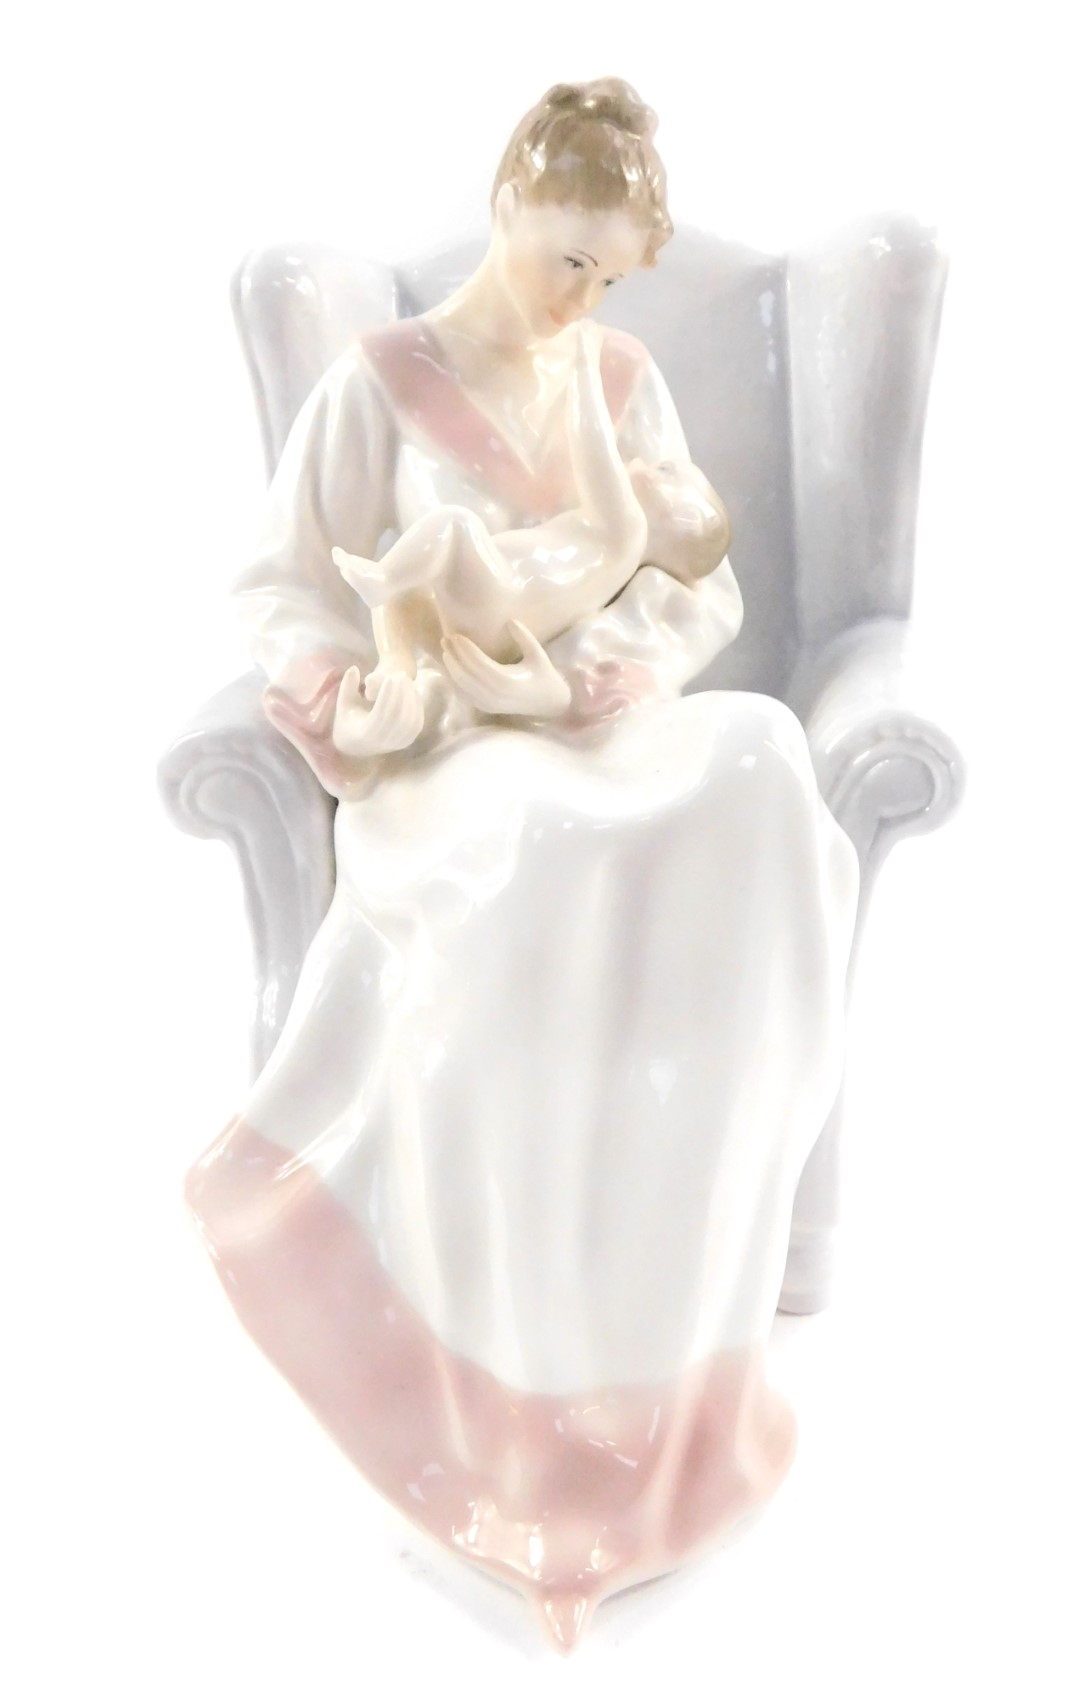 Lot 27 - A Royal Doulton figure modelled as Hush A Bye Baby, special edition, sculpted by Peter Adland,